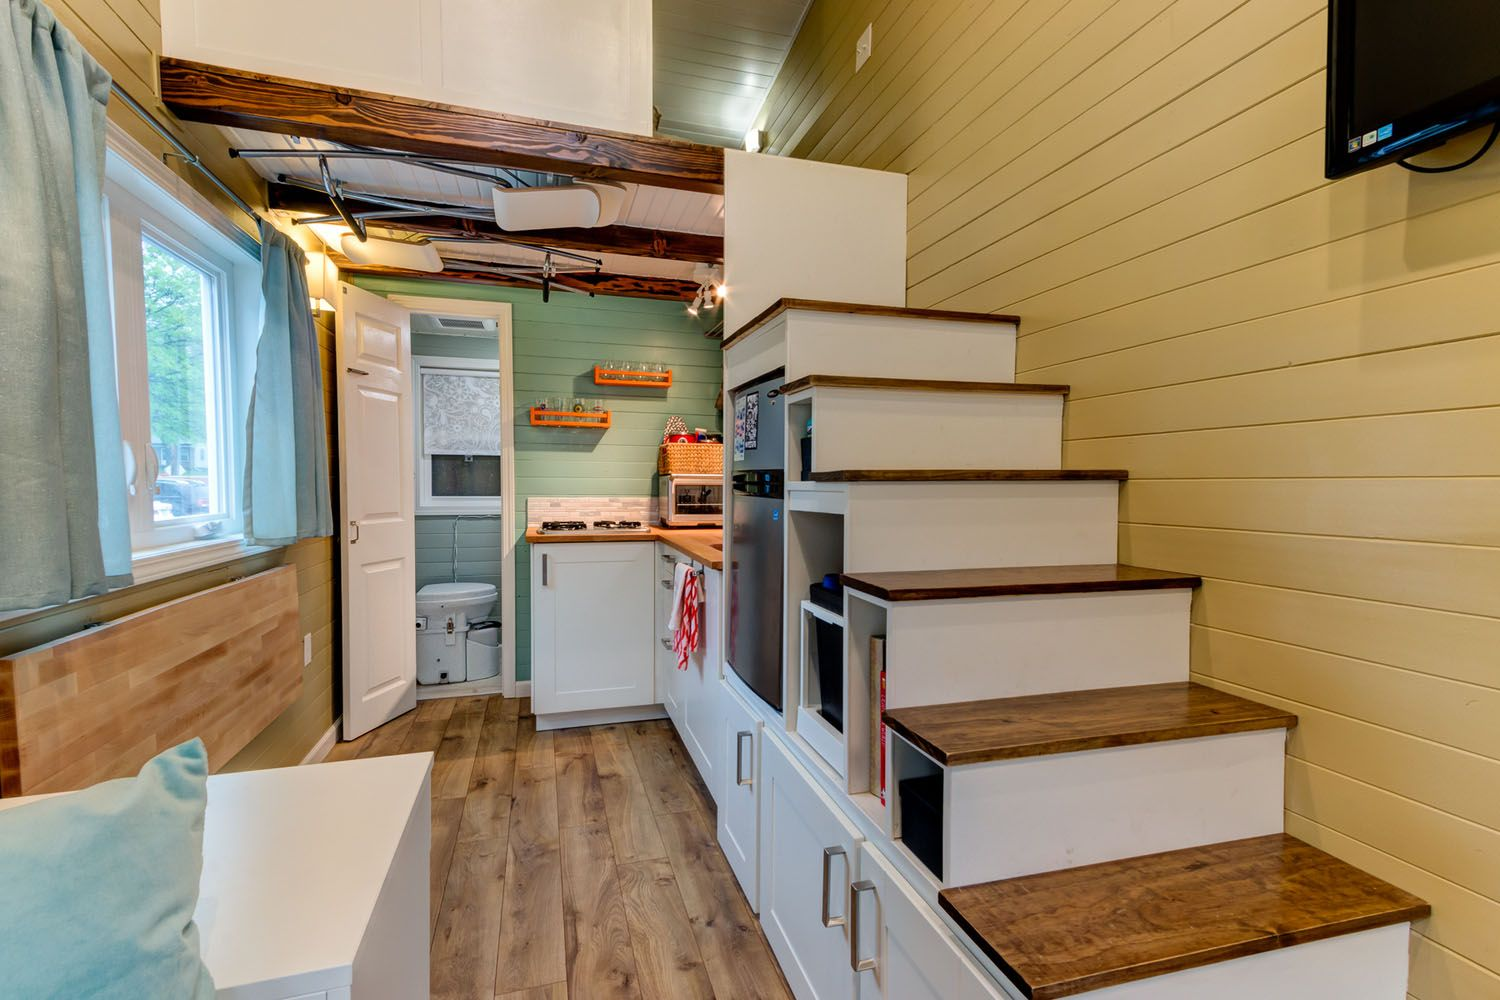 tiny house interior with storage under the staircase - Tiny House Inside